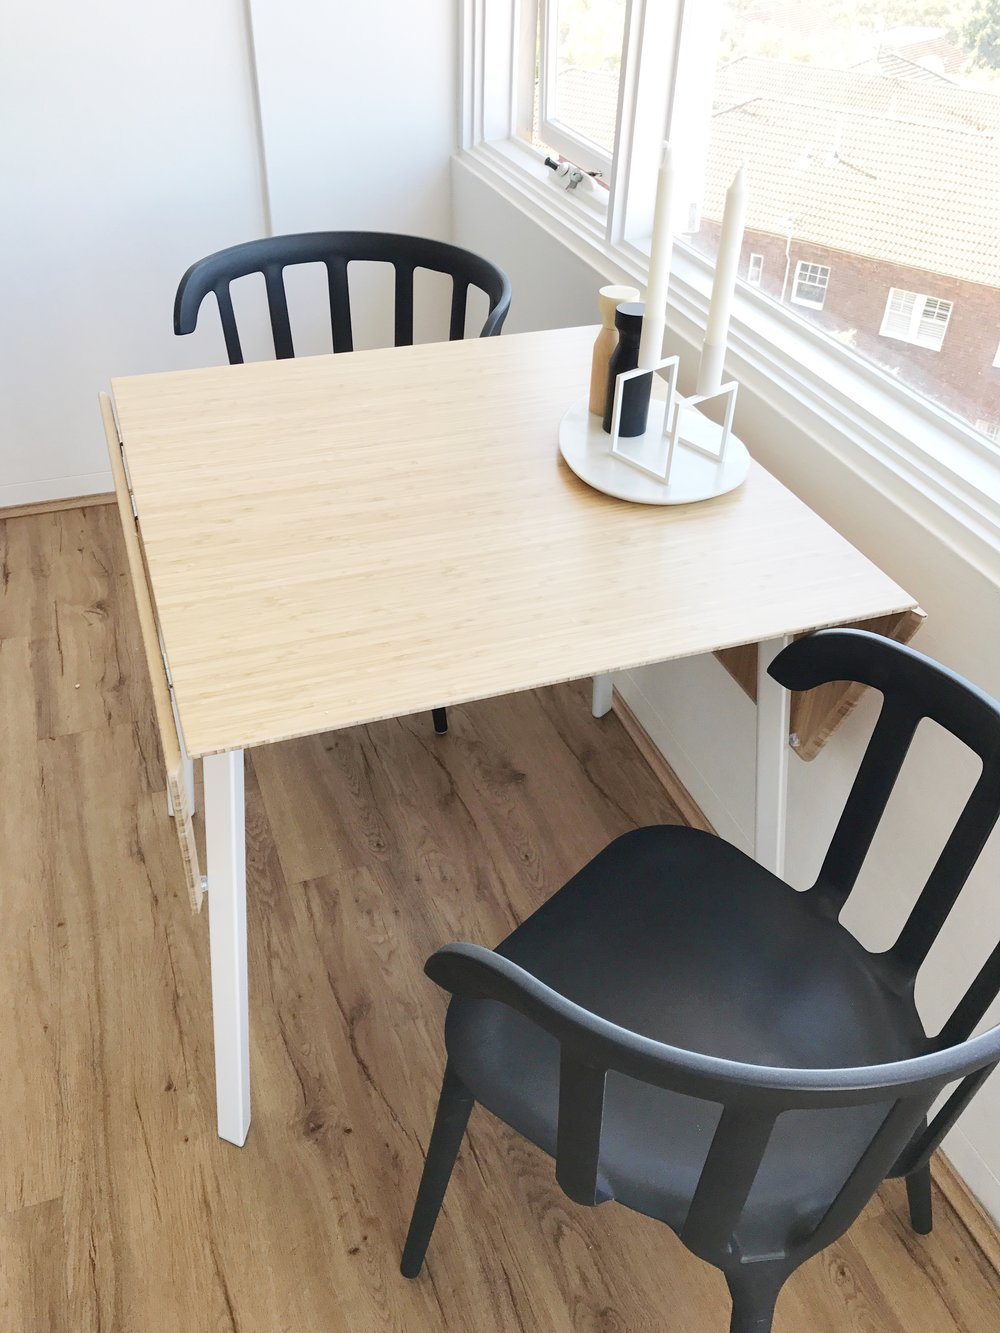 white chairs ikea ikea ps 2012 easy. IKEA PS Chair And Drop Leaf Table, As Used In Bondi Project By The Little White Chairs Ikea Ps 2012 Easy